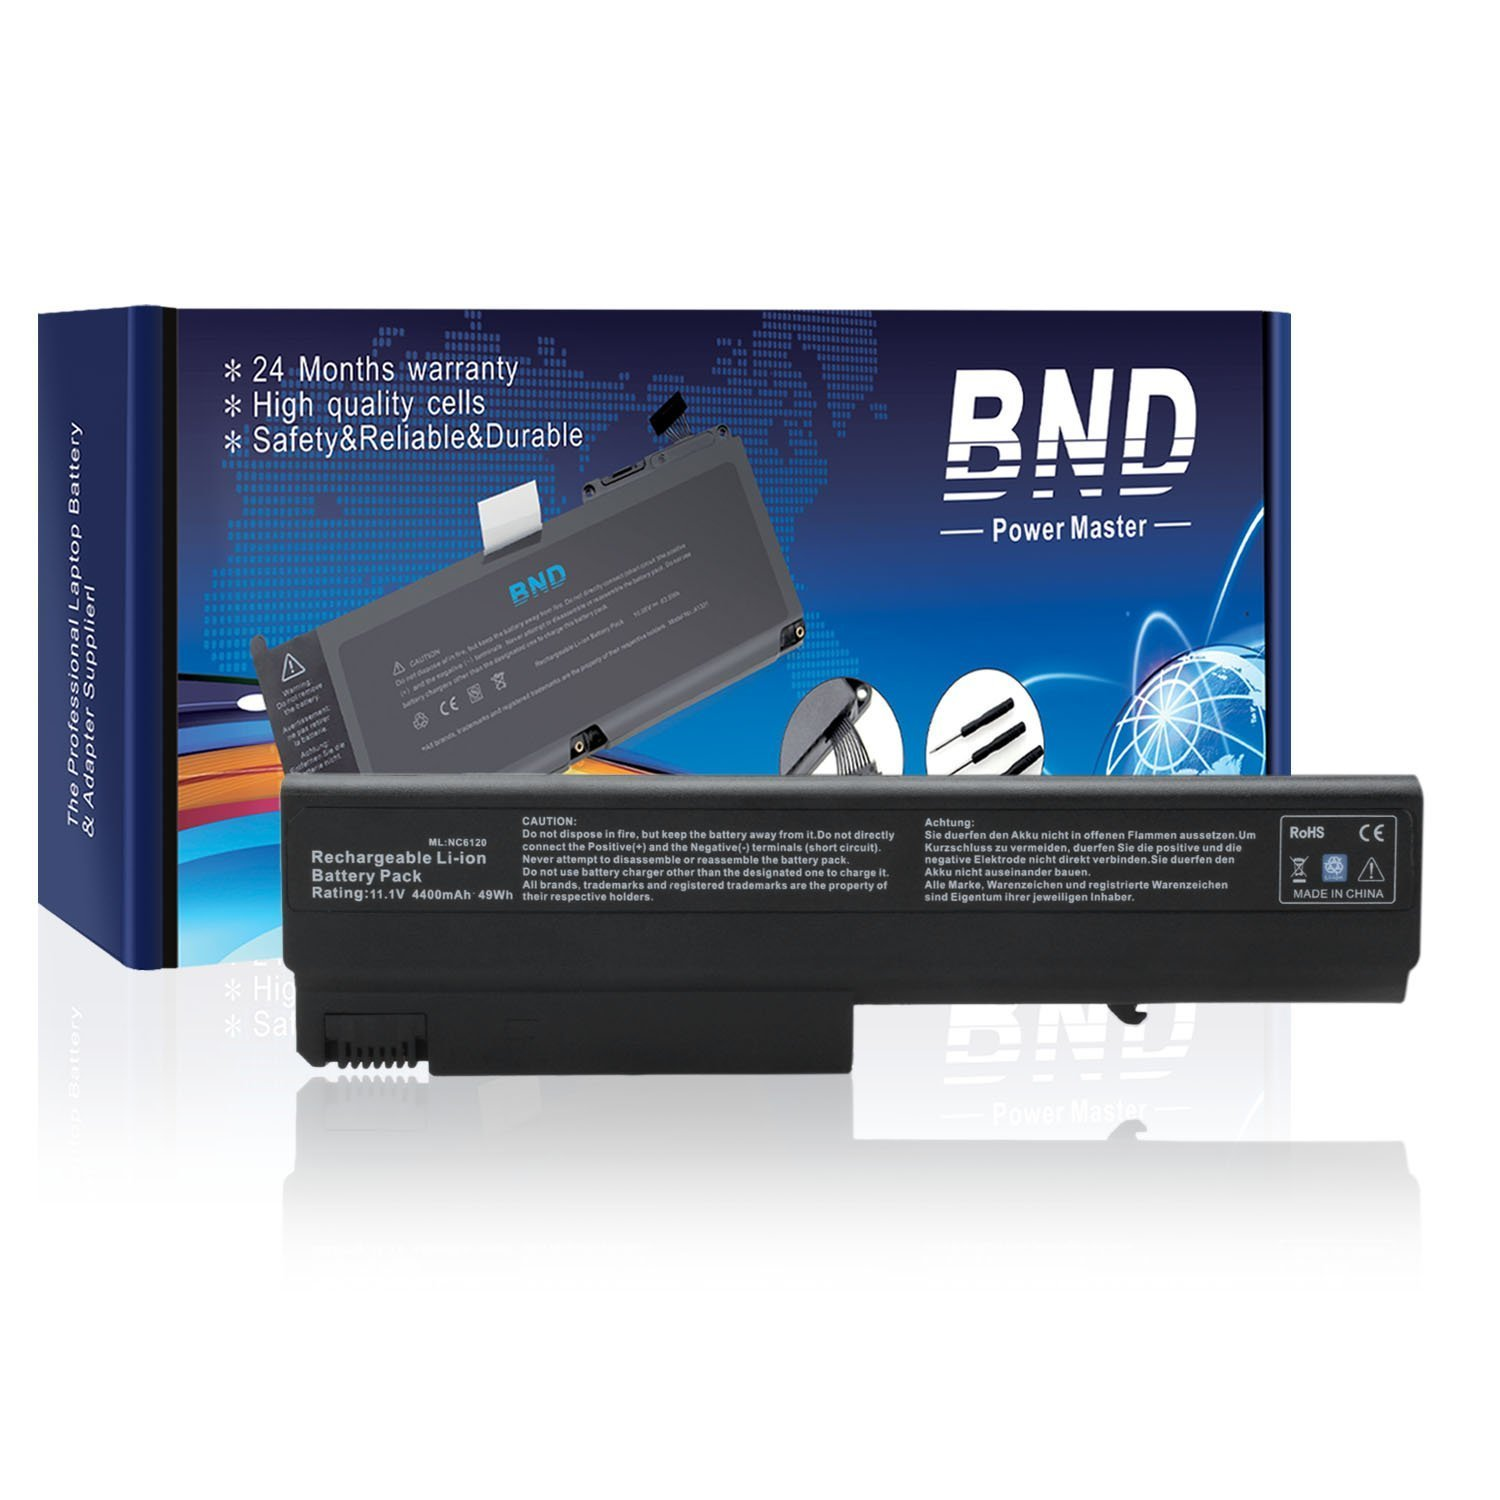 Amazon.com: BND Laptop Battery for HP Compaq 6910p 6510b 6710b NC6400 NC6220  6715s NC6120 NX6110 - 12 Months Warranty[6-Cell 4400mAh/48Wh]: Computers &  ...